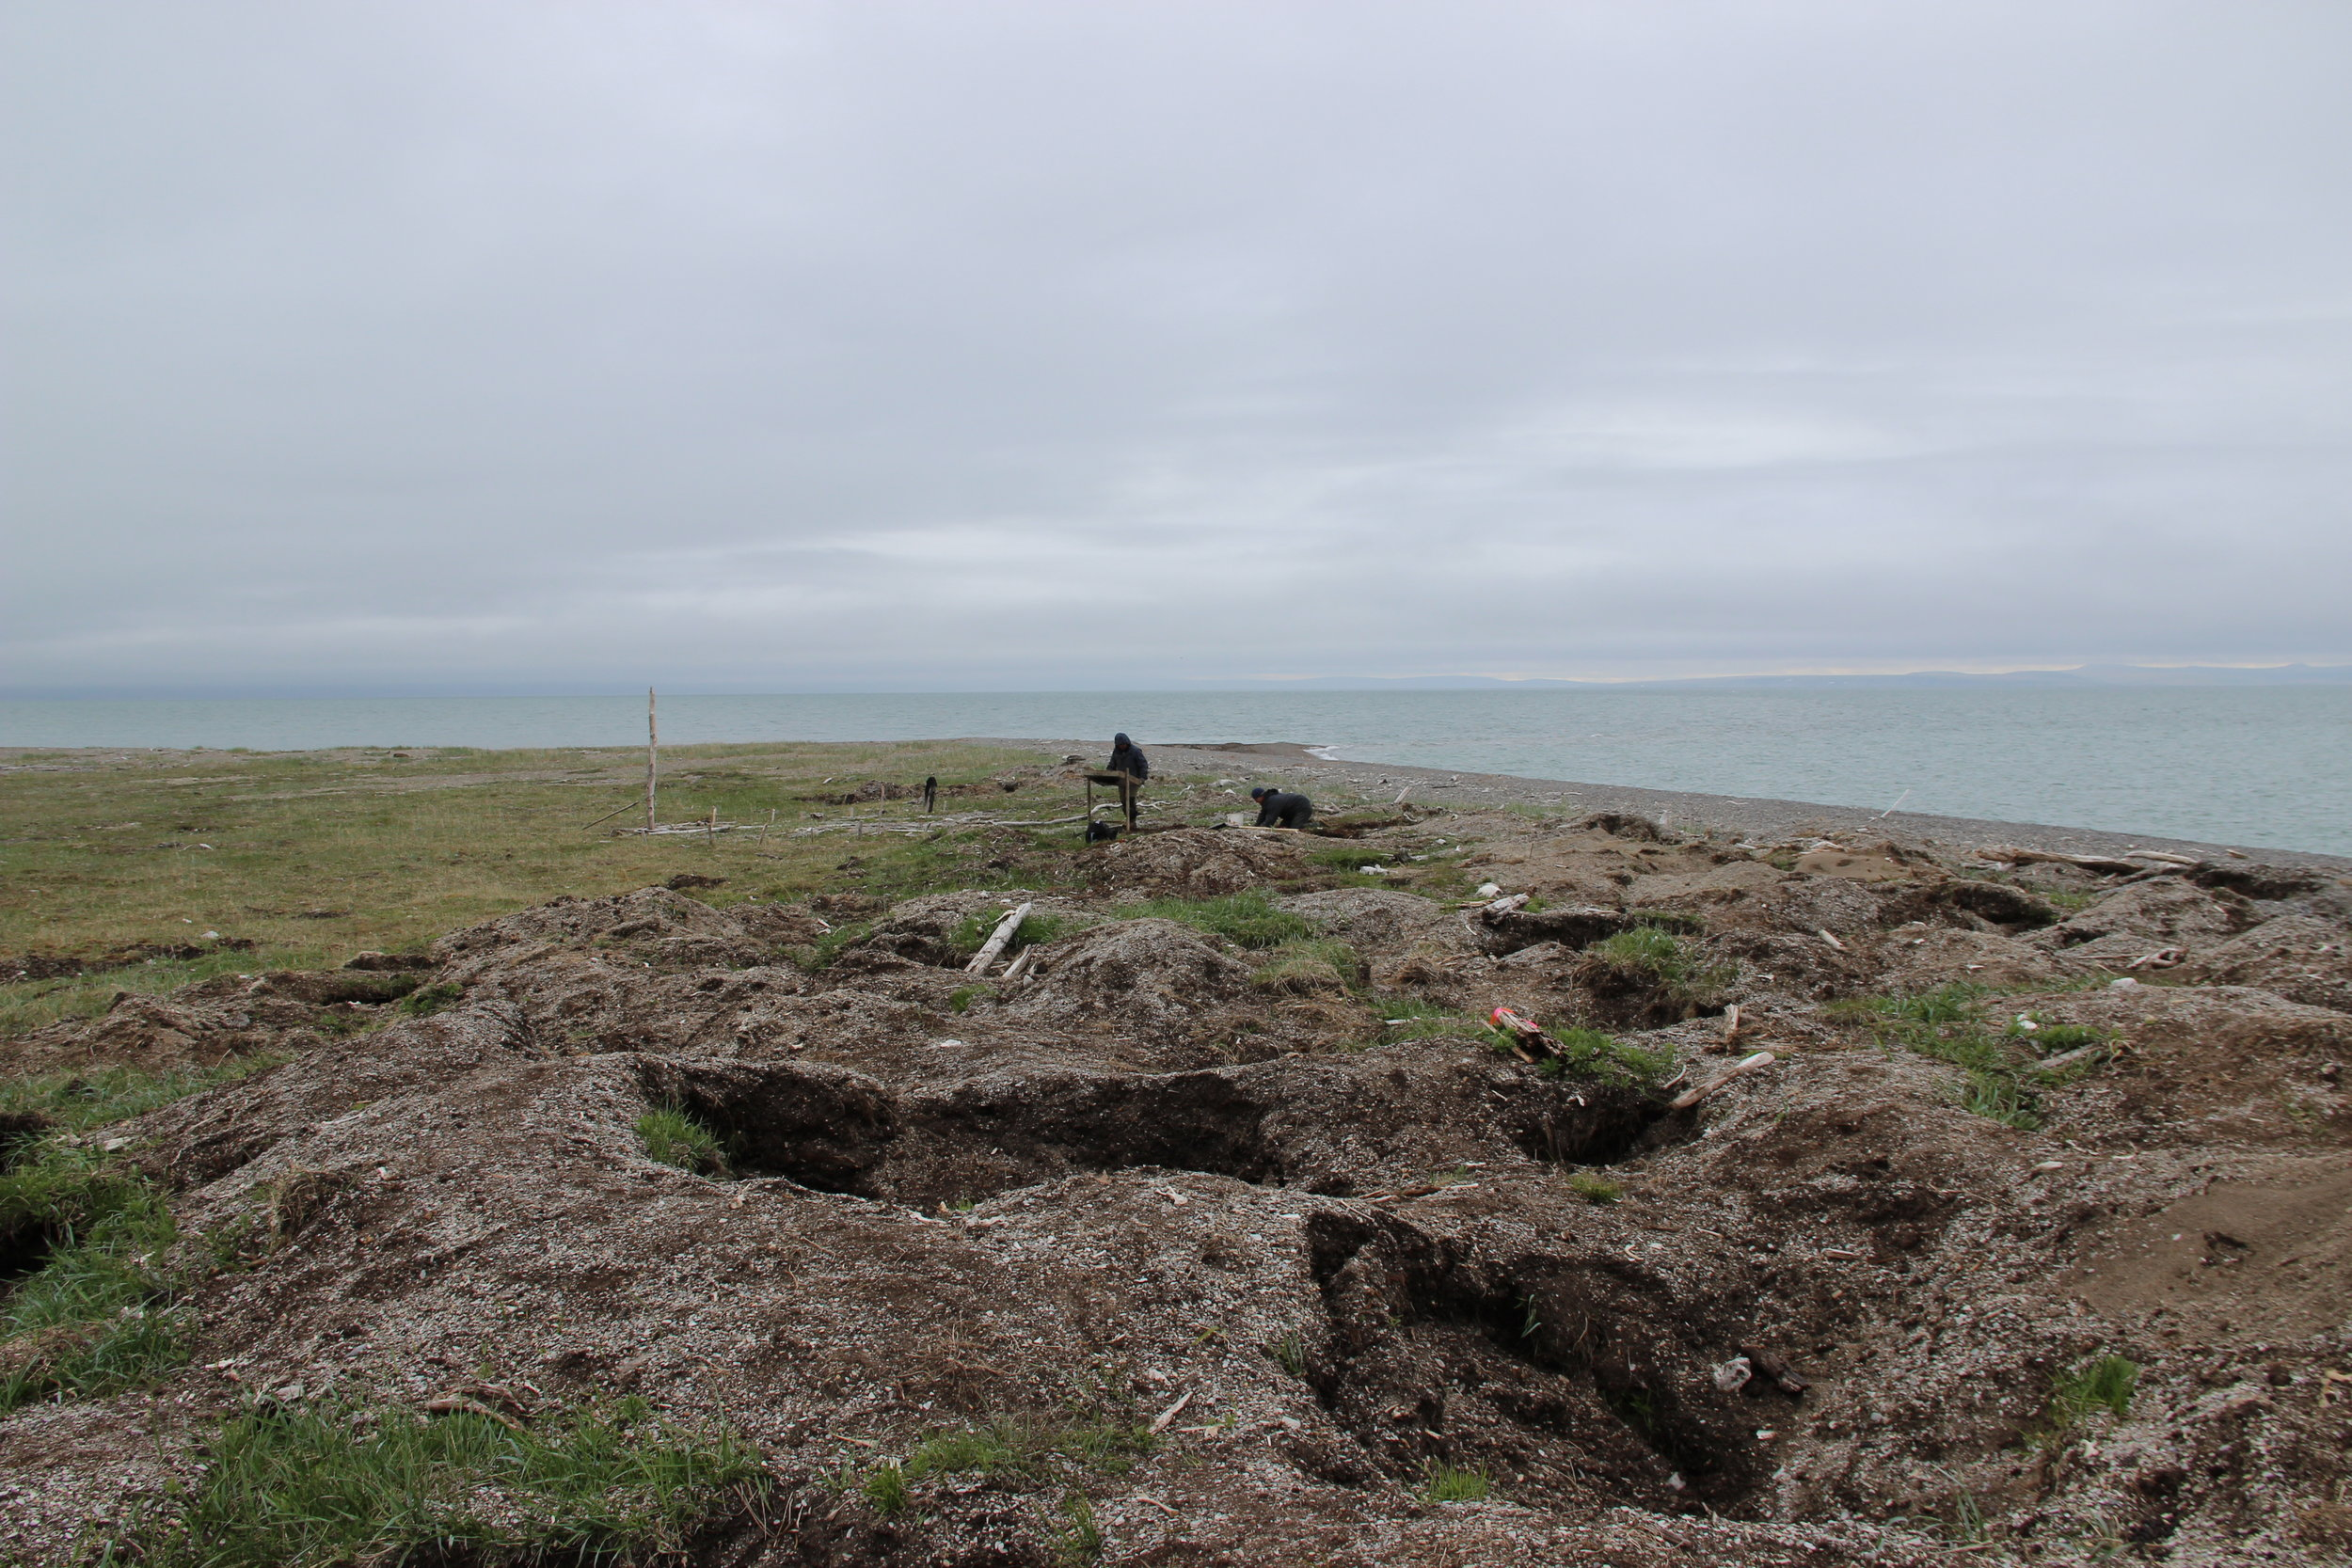 The landscape looks desolate, but it was once home to thriving native populations. Anderson and her team are working to piece together an archaeological history of the area.